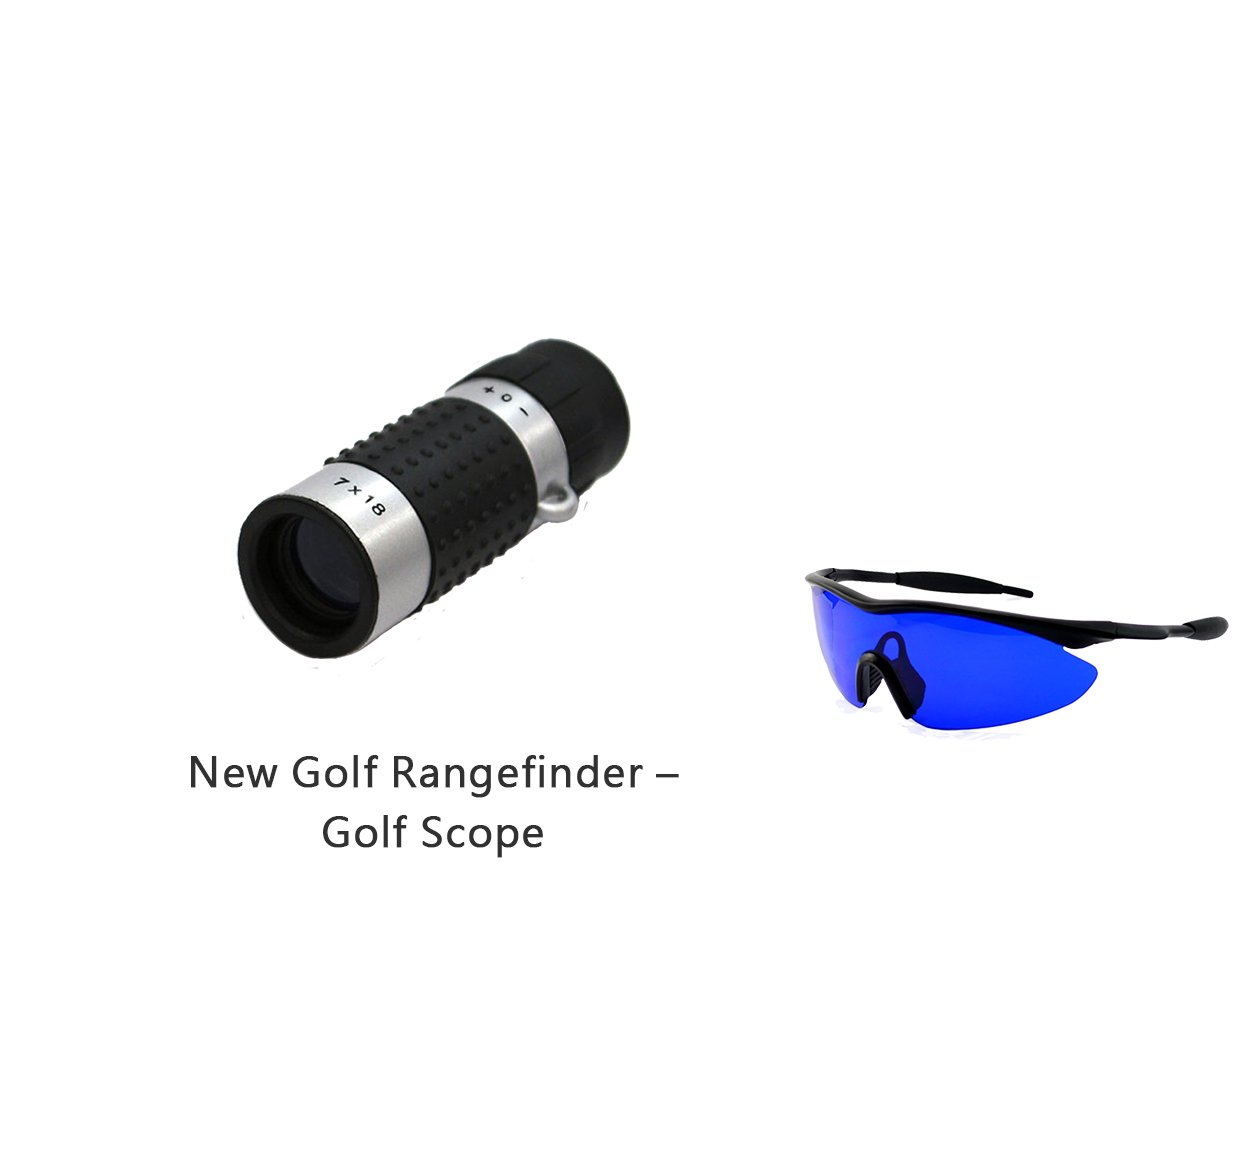 Posma GF100A Bundle set Golf Rangefinder High Definition Mini Monocular Pocket Scope + Golf Ball Finder Hunter Retriever Glasses